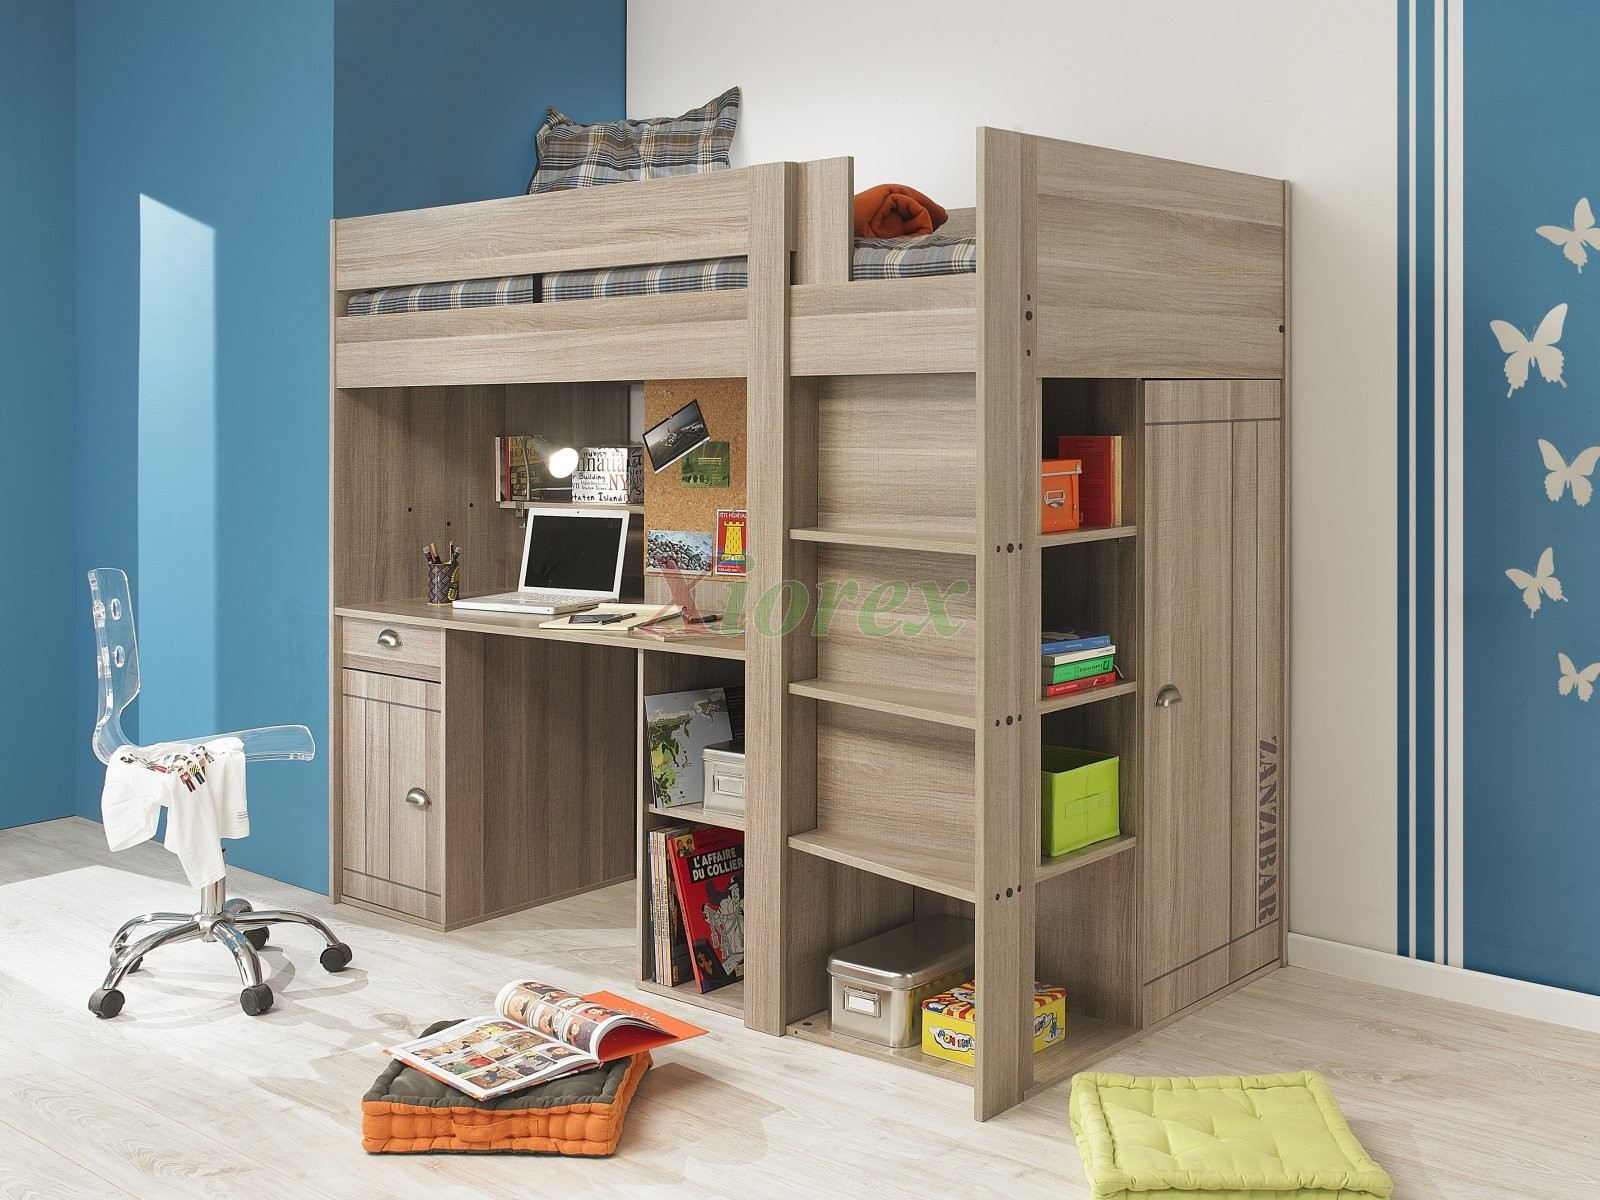 Gami Largo Loft Beds For Teens Canada With Desk Closet Xiorex